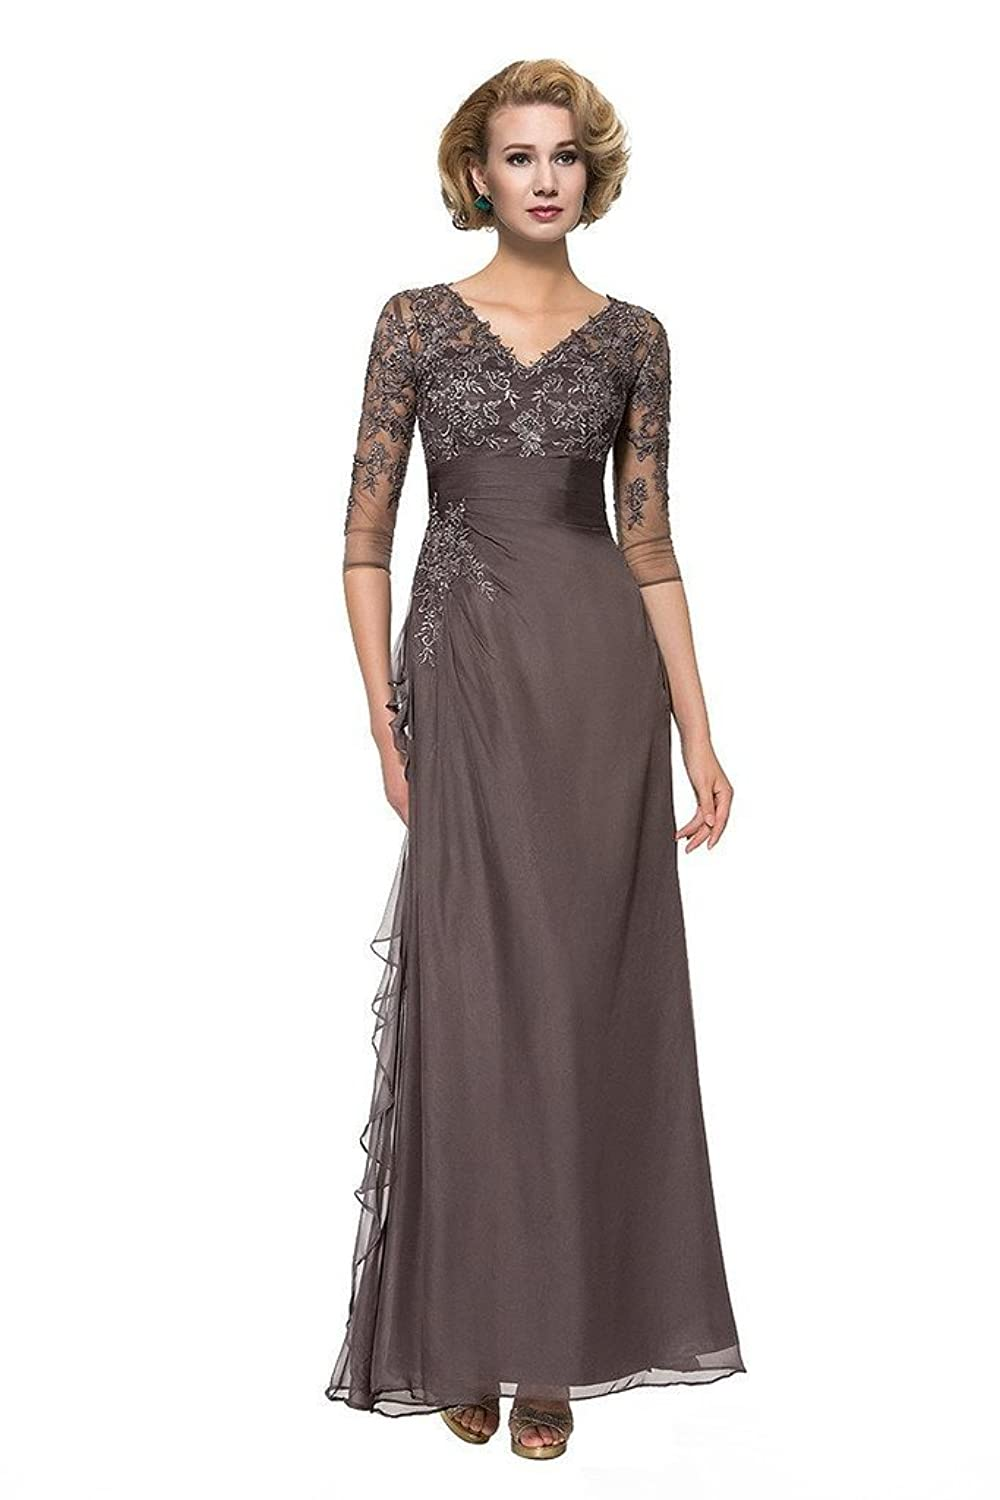 CLOCOLOR Women's Floor Length Ruched V-neck Lace Beaded Mother of the Bride Dress with 3/4 Sleeves